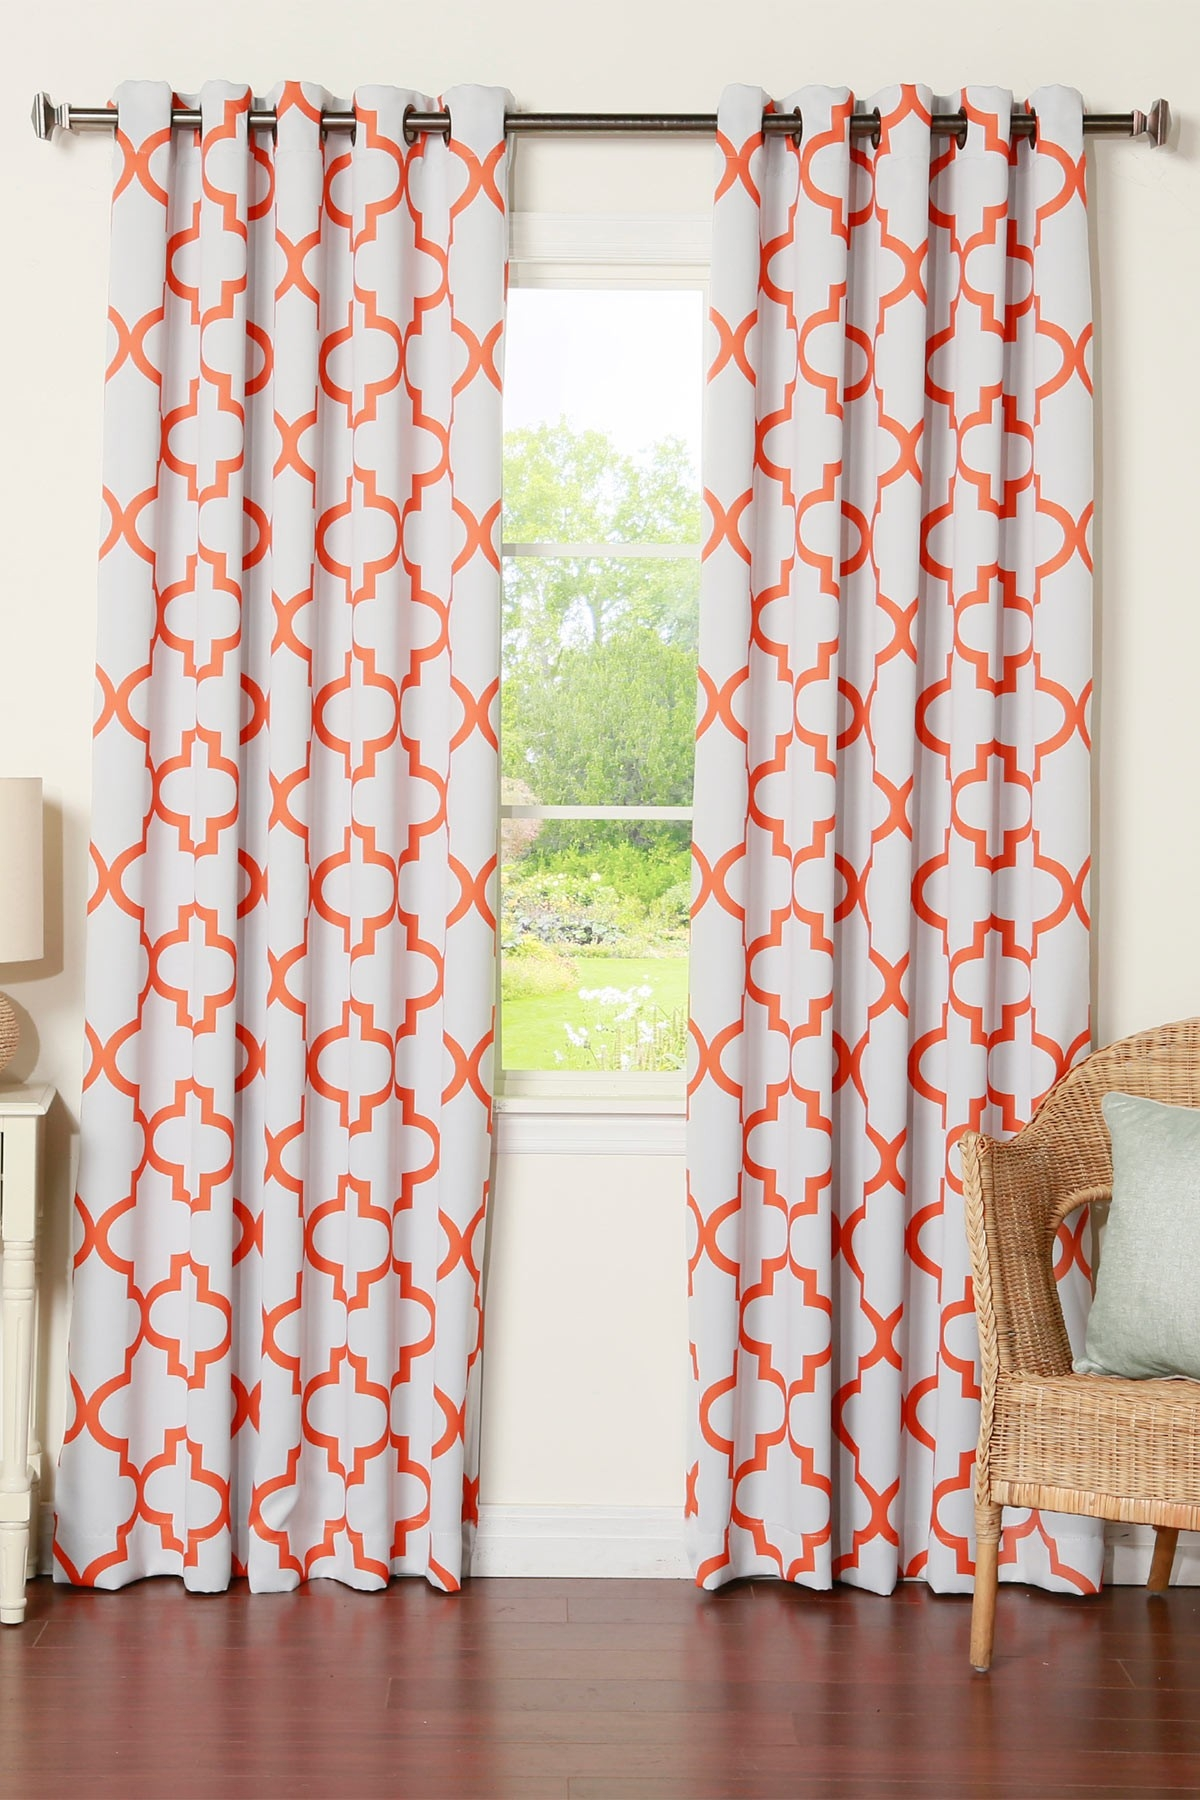 Best Home Fashion Inc Reverse Moroccan Tile Printed Room With Regard To Moroccan Tile Curtains (Image 5 of 15)